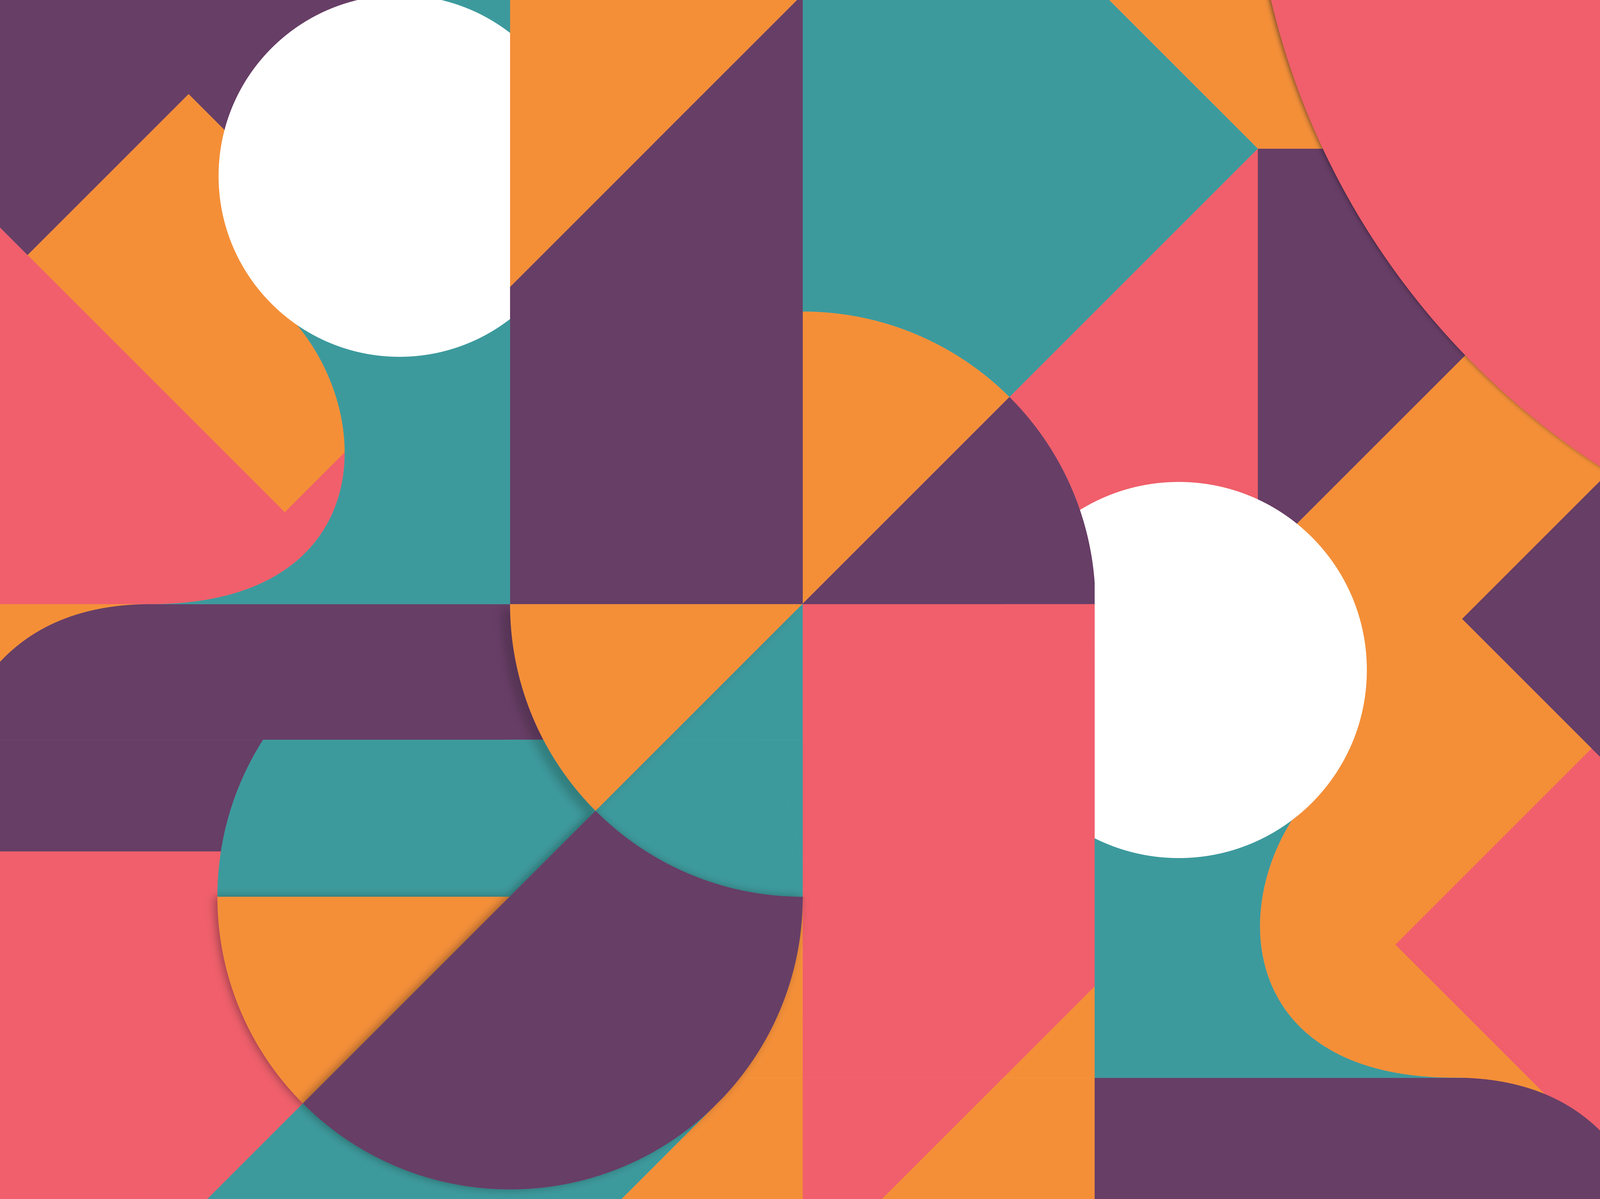 Abstract Design by Yamjal Venkatesh on Dribbble